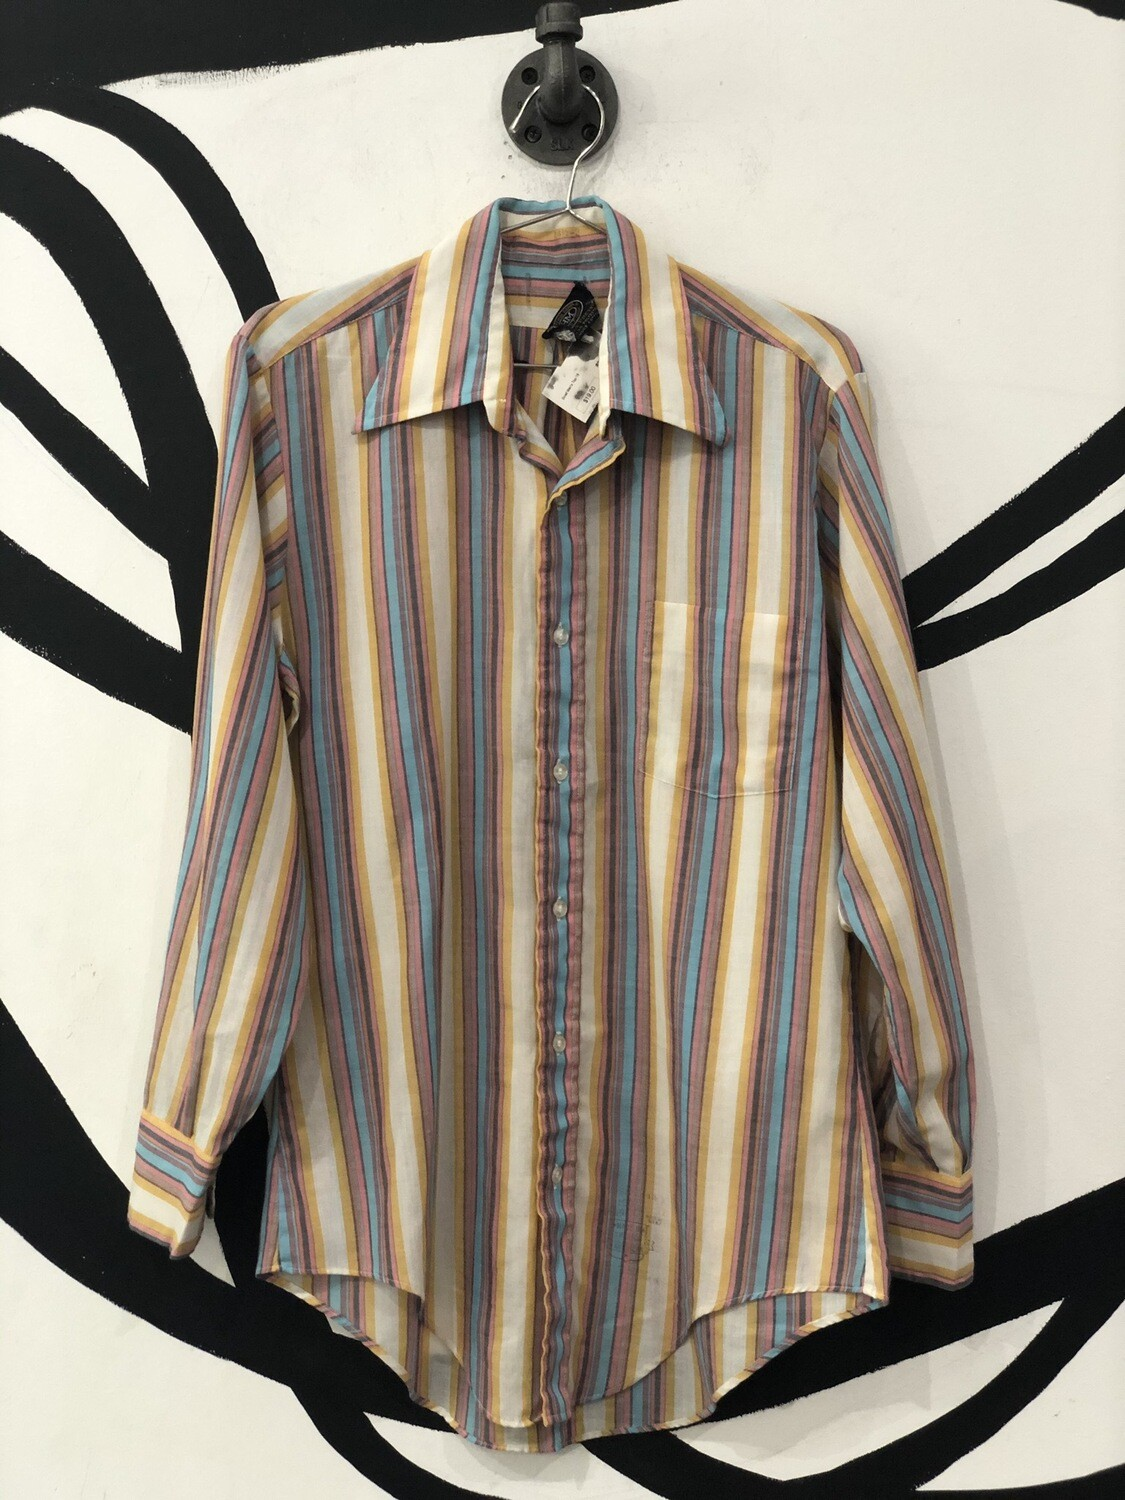 Honor Man Vertical Stripe Long Sleeve Button Up Top Size 14 1/2